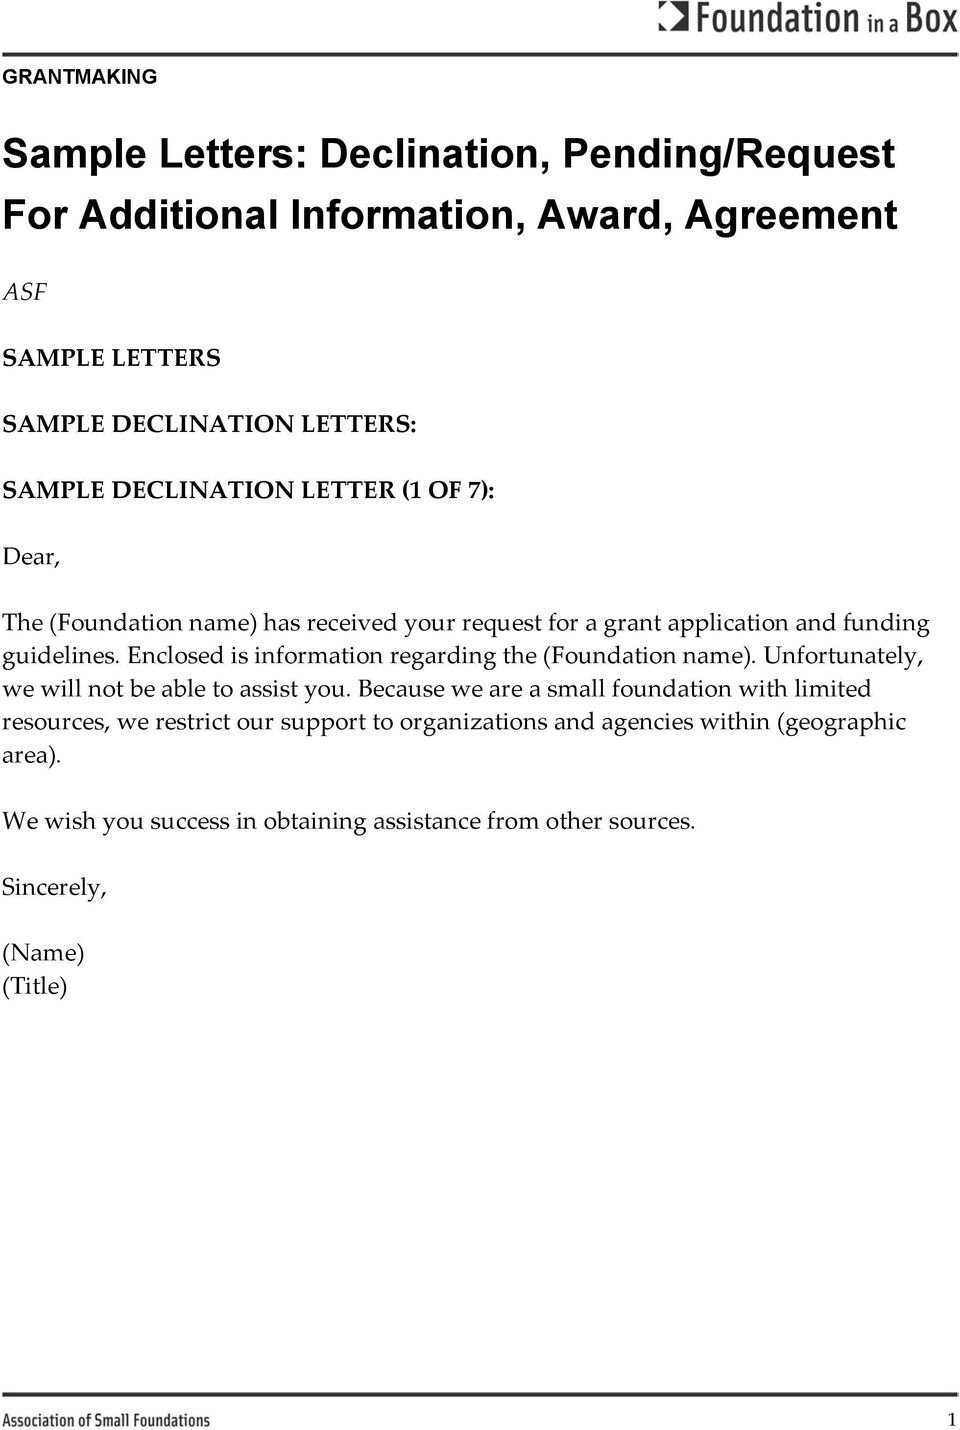 sample letters declination pendingrequest for additional invoice declination sample letter